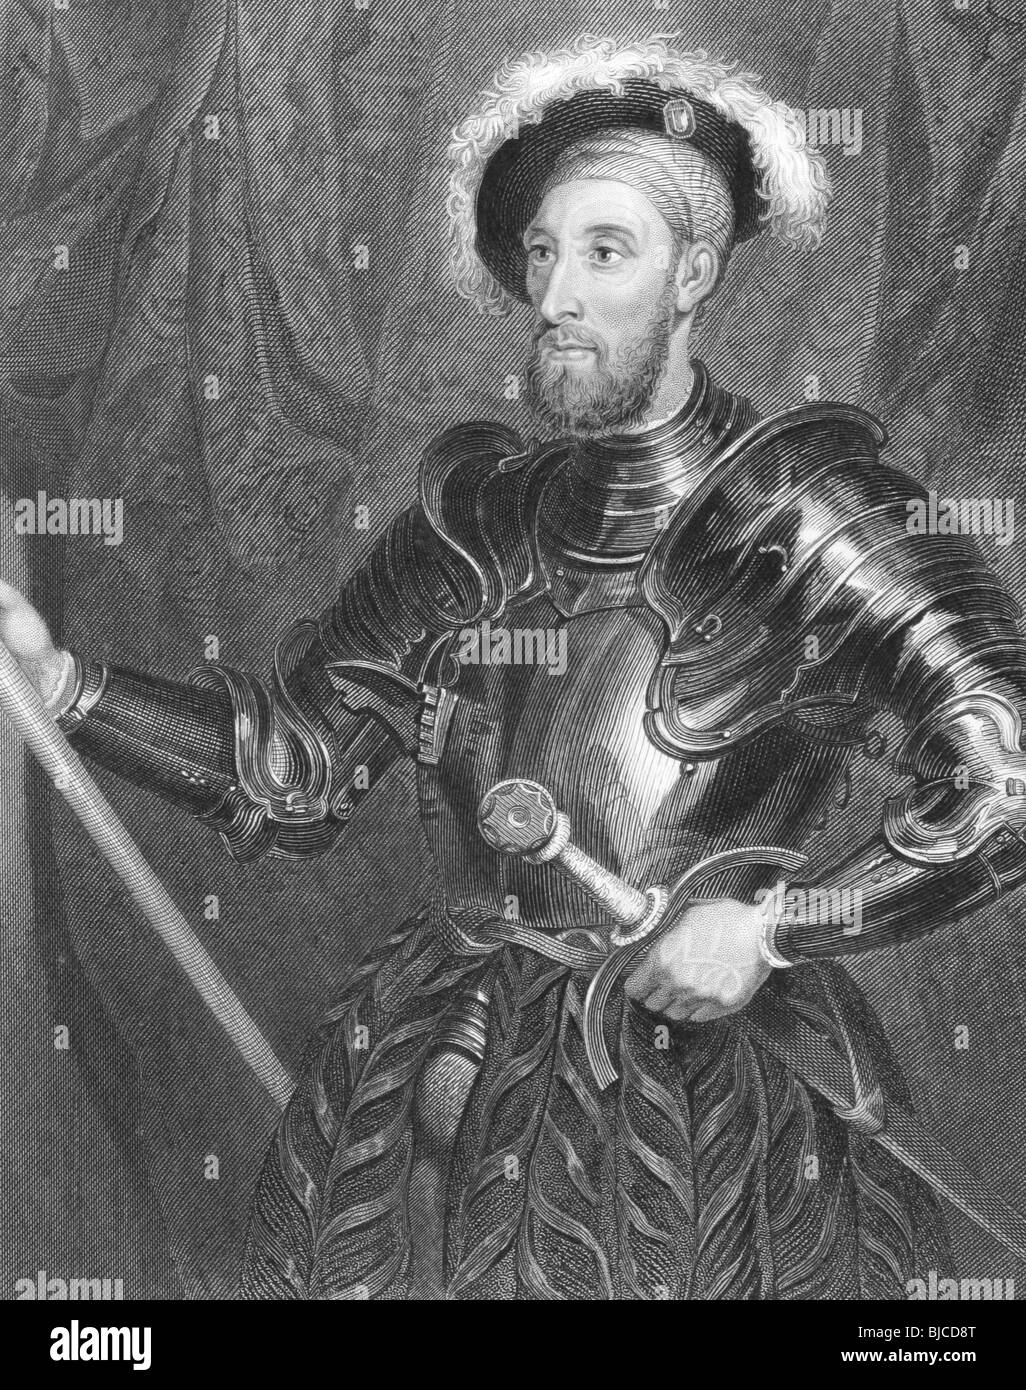 Nicholas Carew (1496-1593) full jousting armour on engraving from the 1800s. English courtier and statesman. - Stock Image